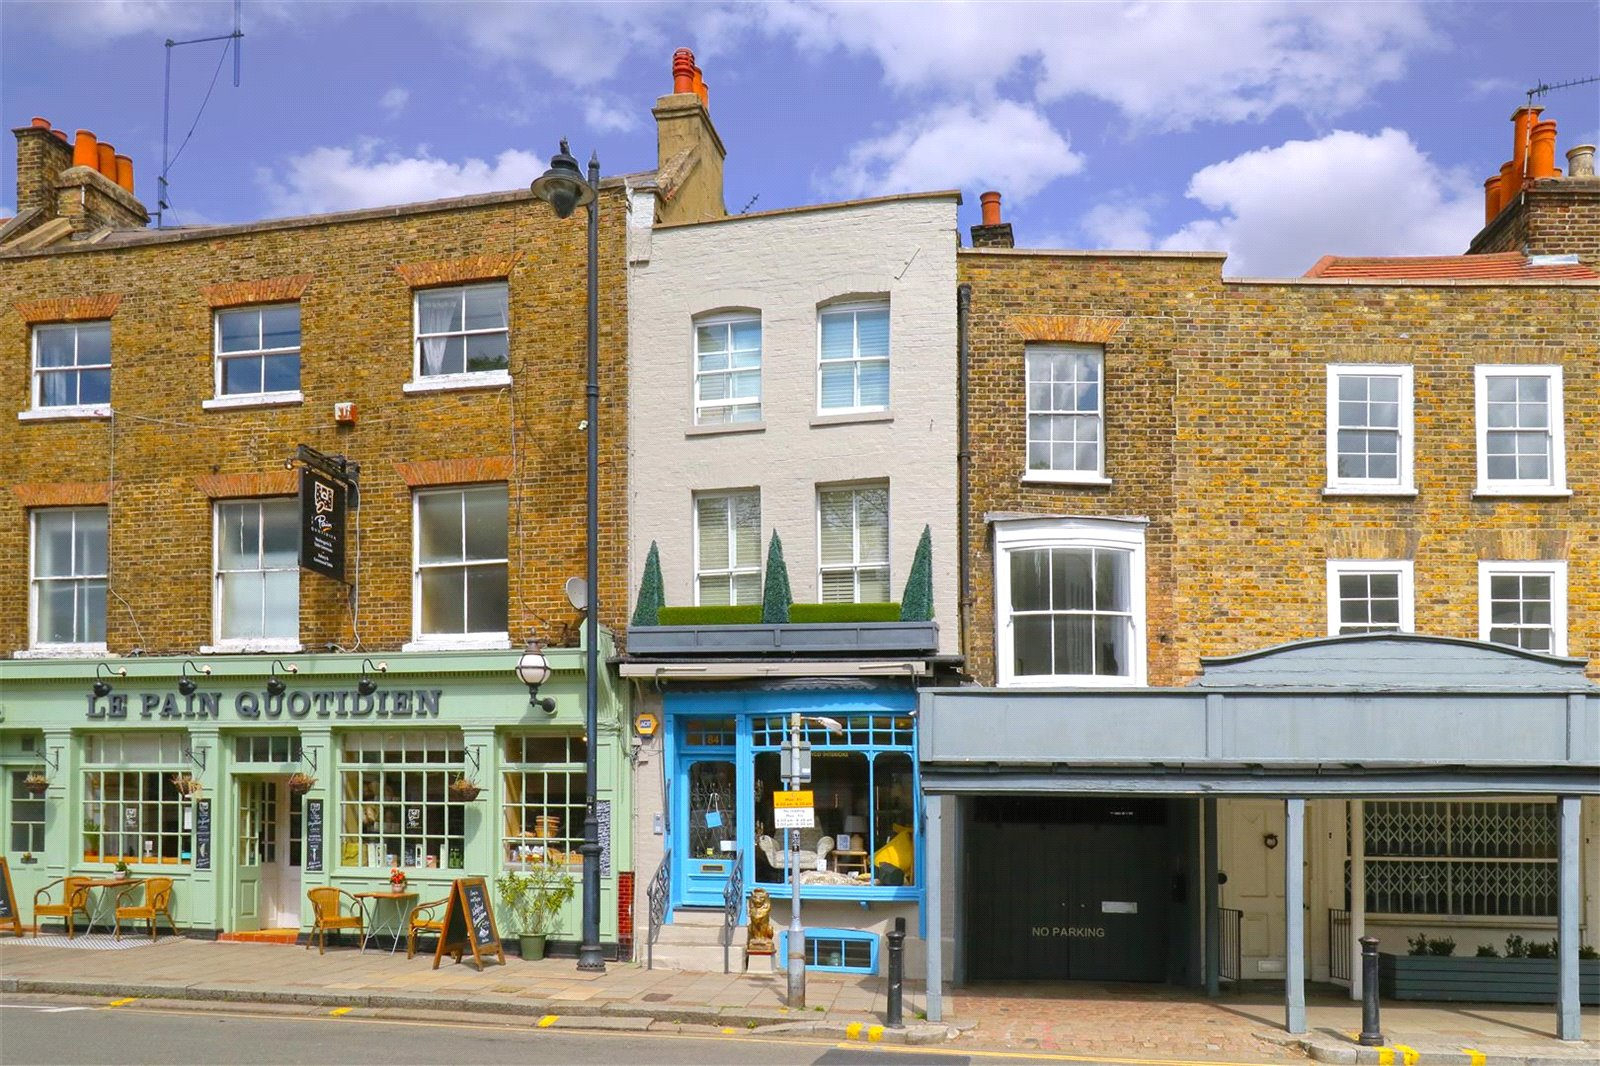 House for sale in Highgate, N6 5HX - Property Image 1